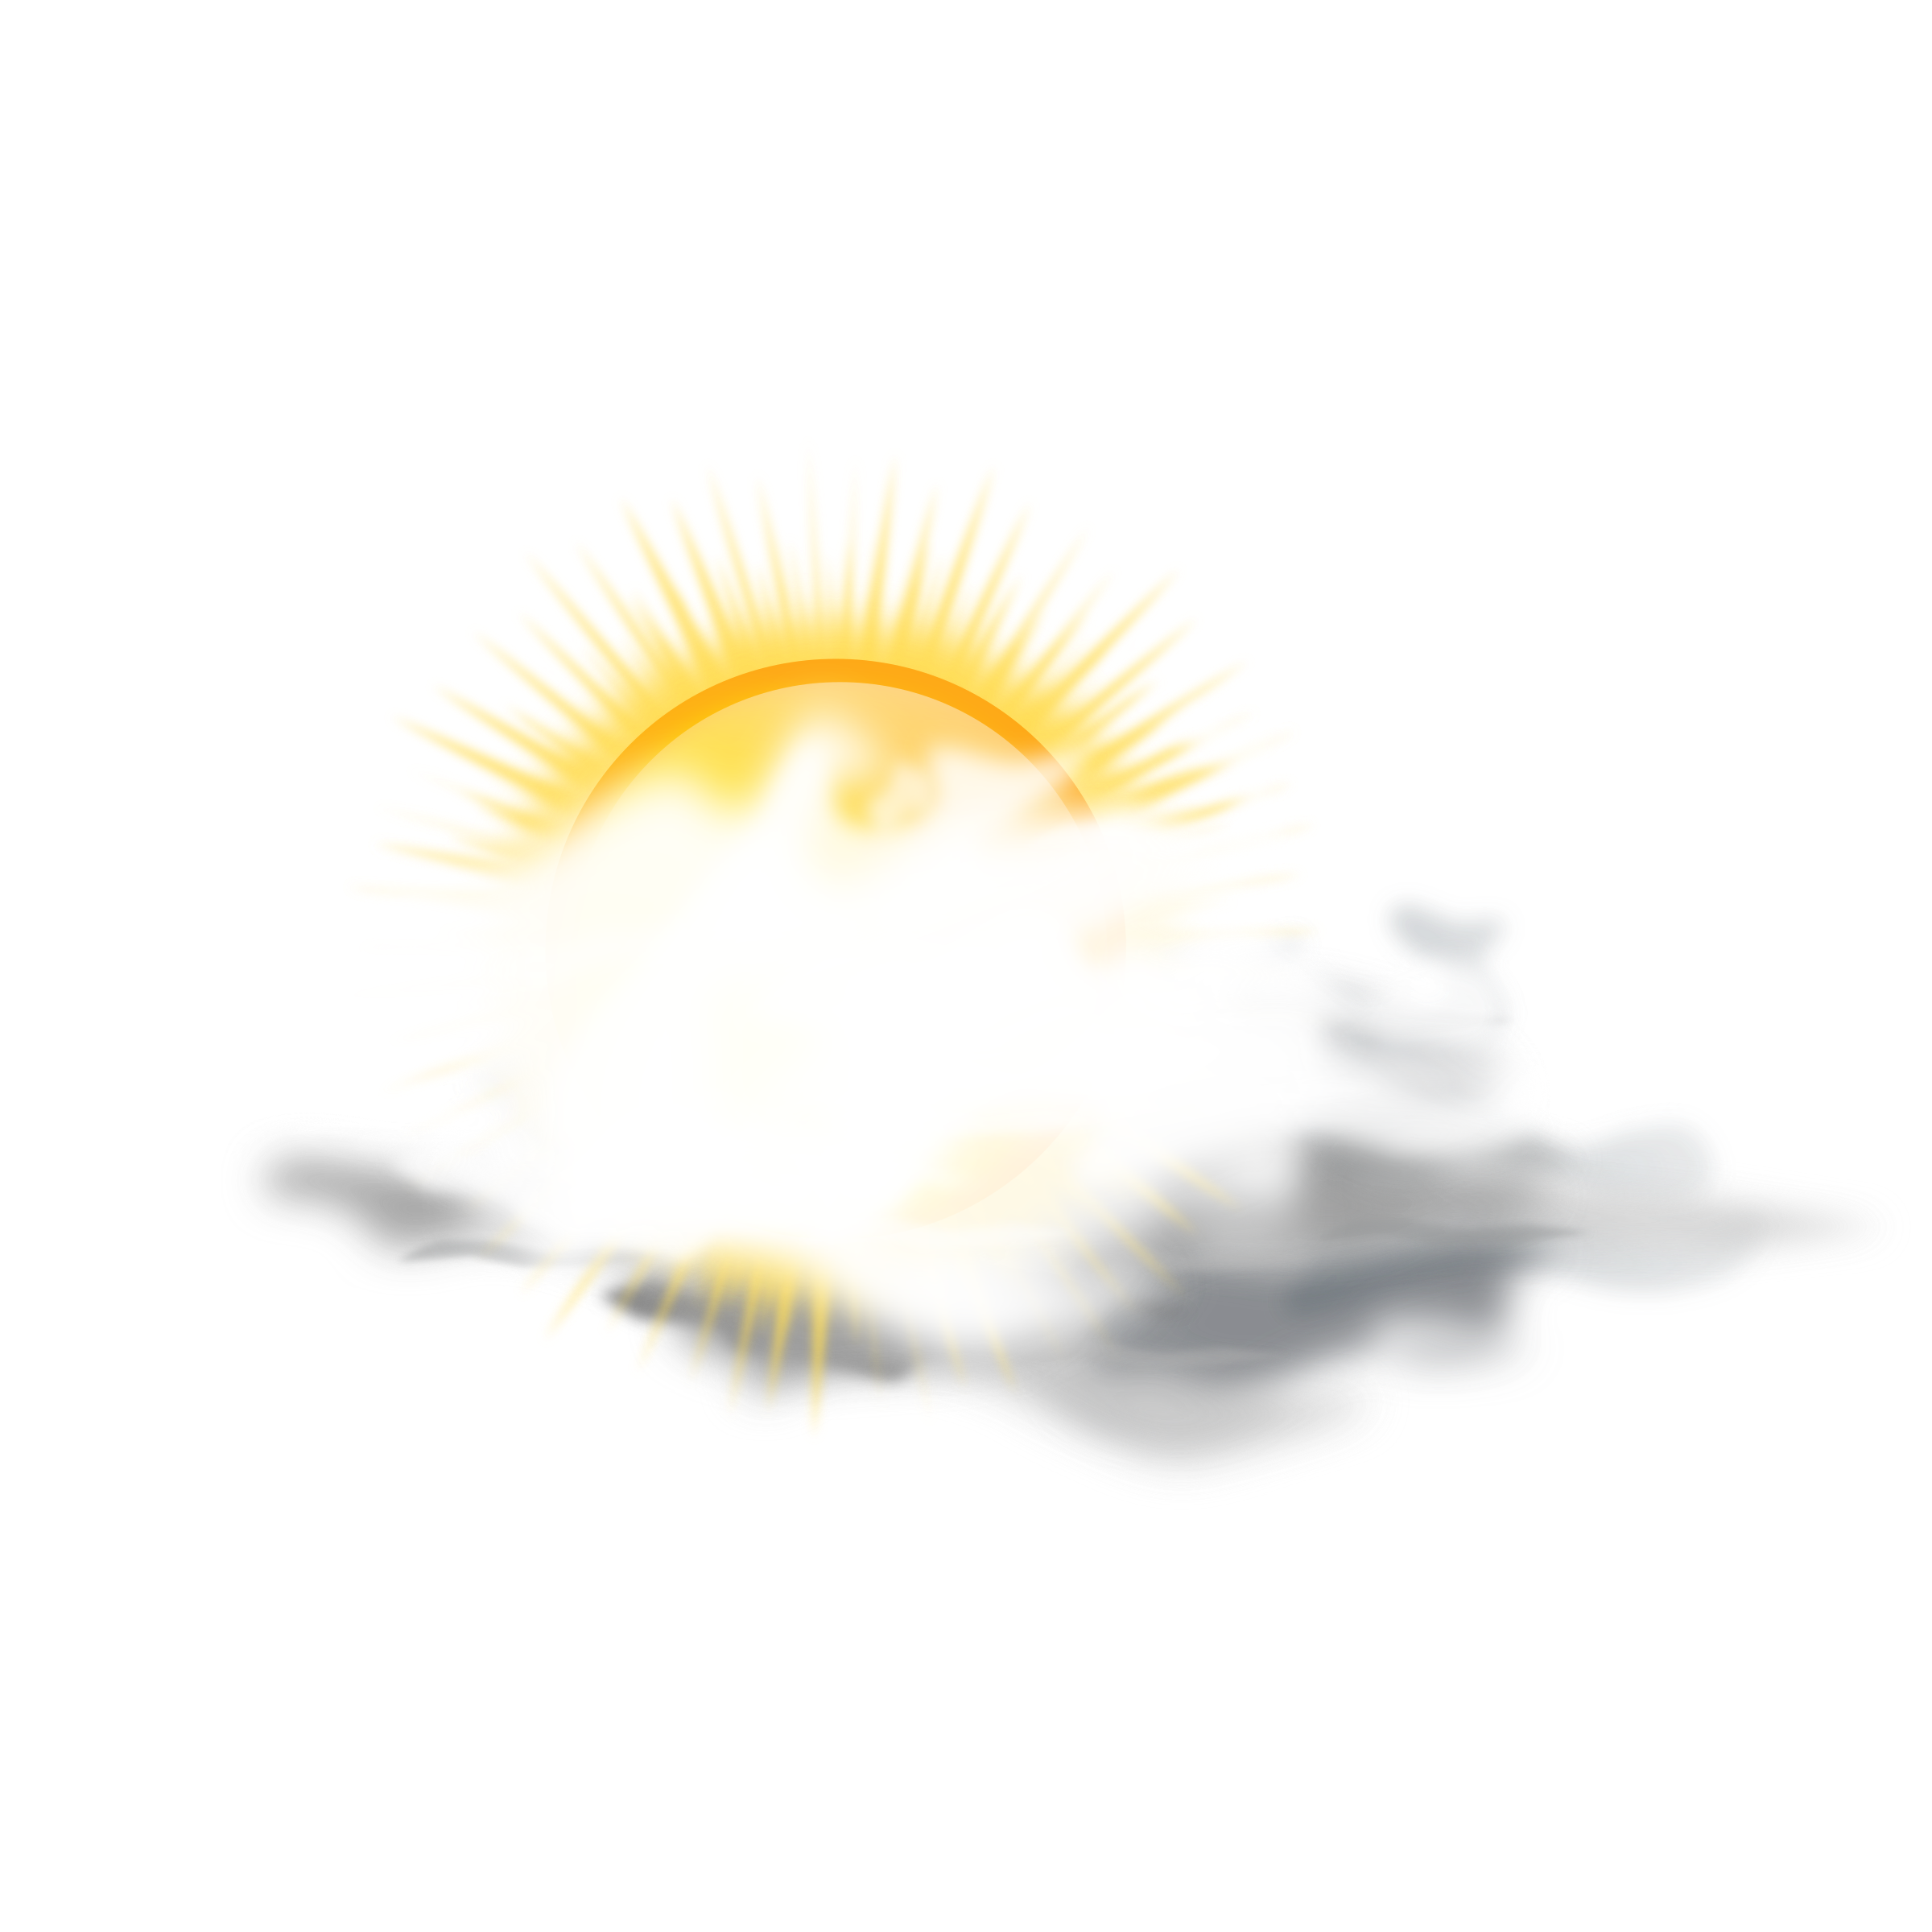 Icon big image png. Cloudy clipart weather forecast